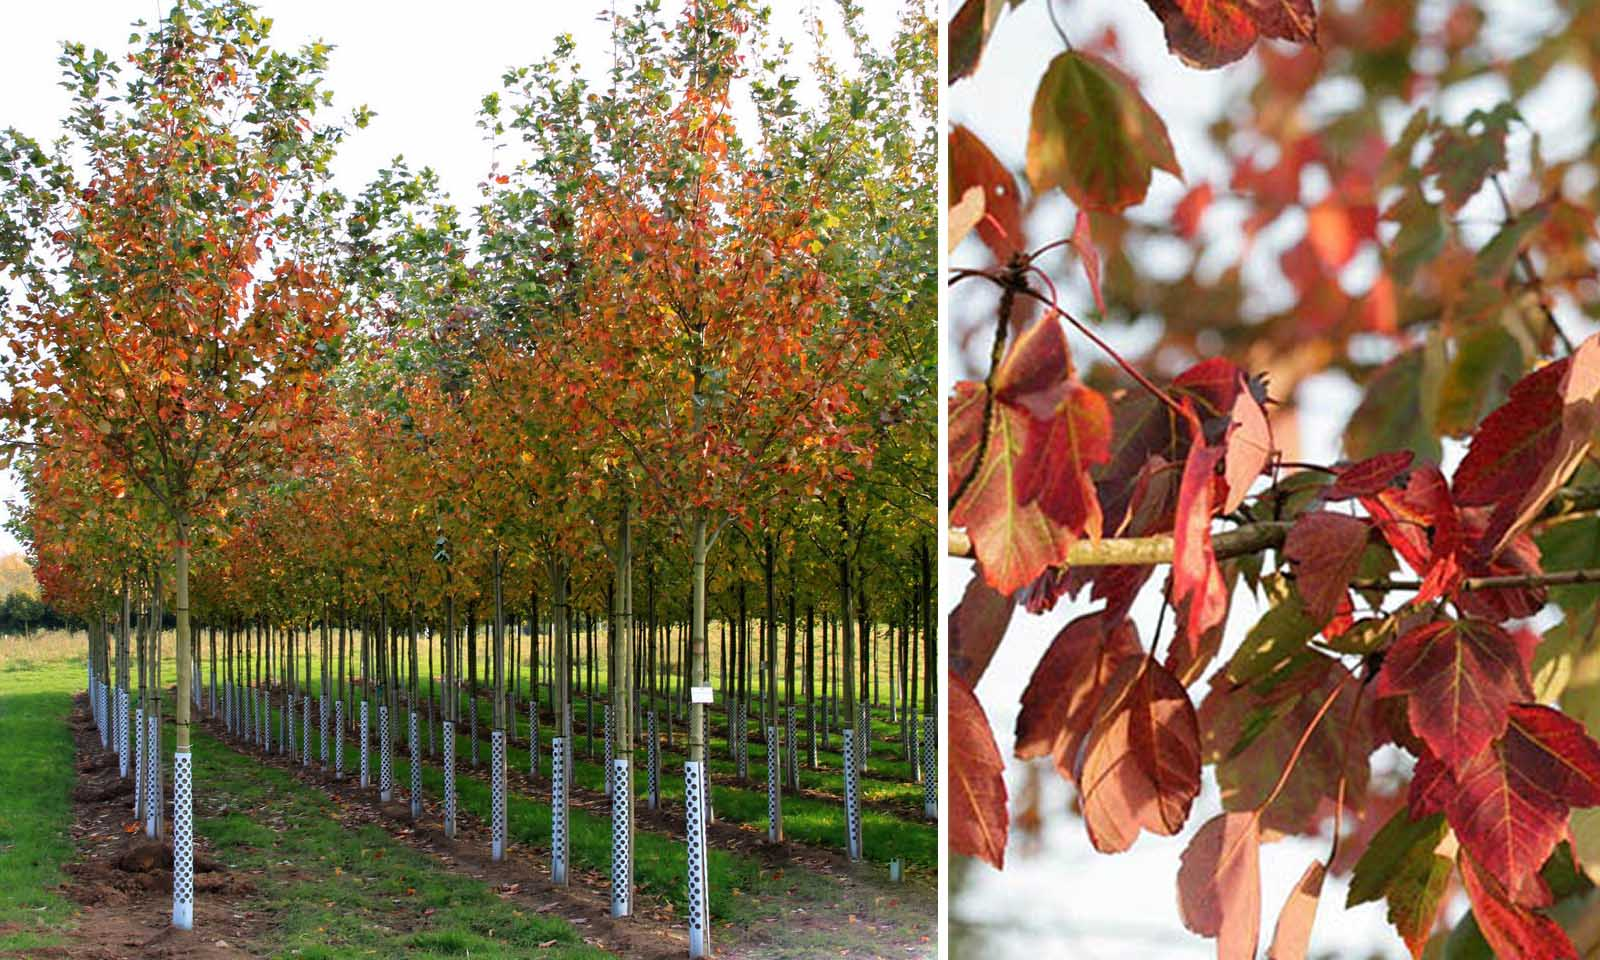 Acer Rubrum 'Red Sunset' (Red Maple 'Red Sunset') - Standard